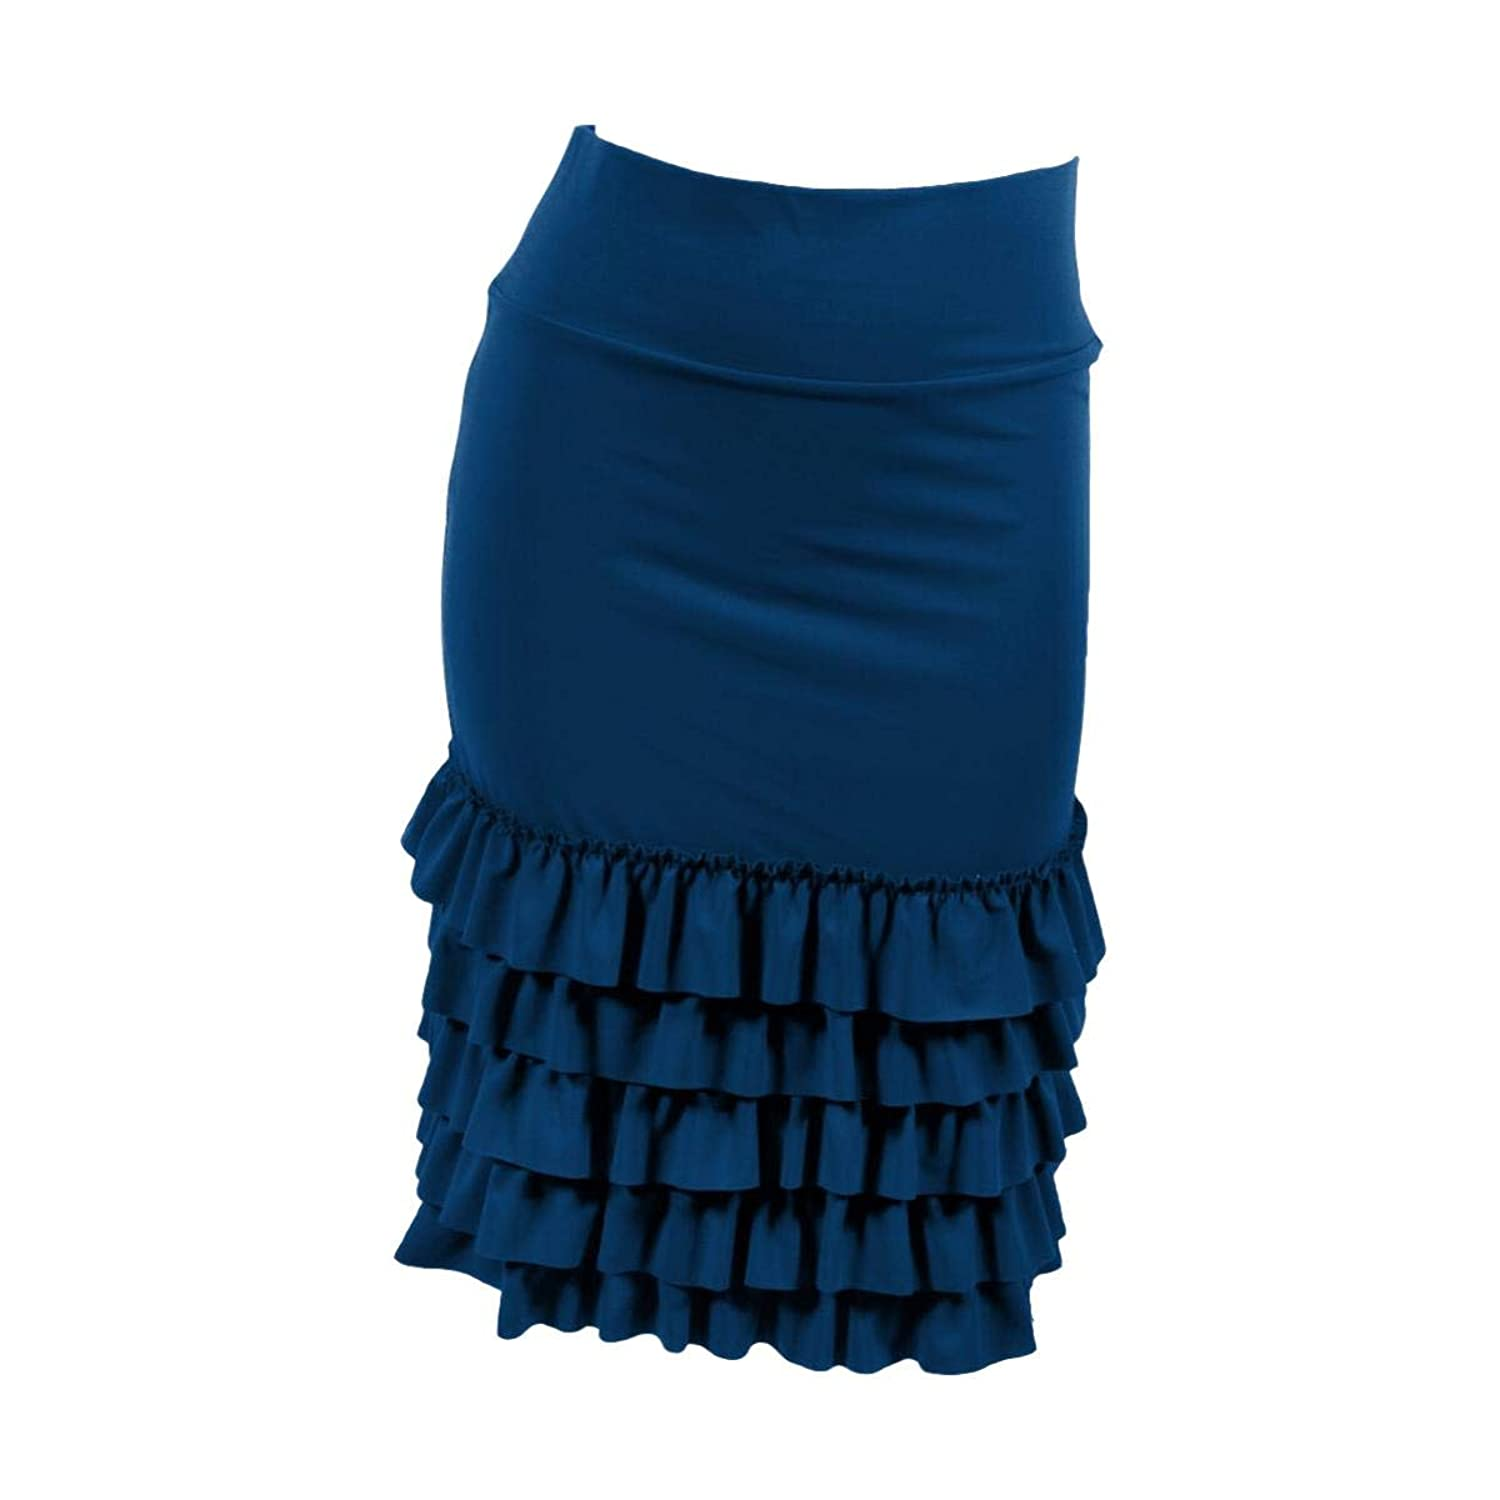 eb69409f39c Our bestselling Bring on the Frill skirt extender will expand your  wardrobe...we promise! Customers love our signature stretch fabric and the  versatility.